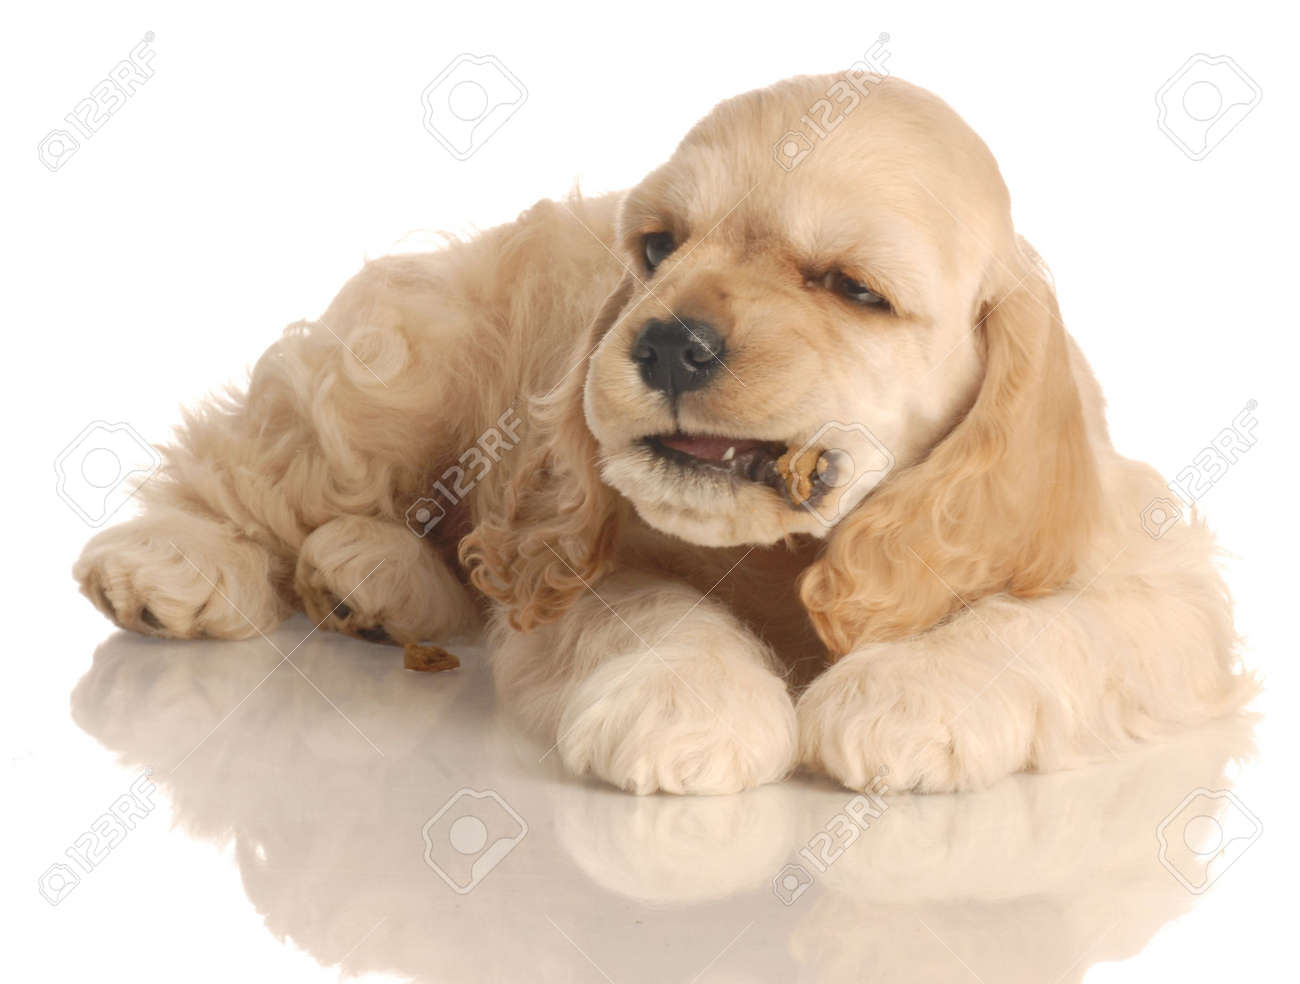 American Cocker Spaniel Puppy Eating A Piece Of Dog Food Isolated Stock Photo Picture And Royalty Free Image Image 3850002